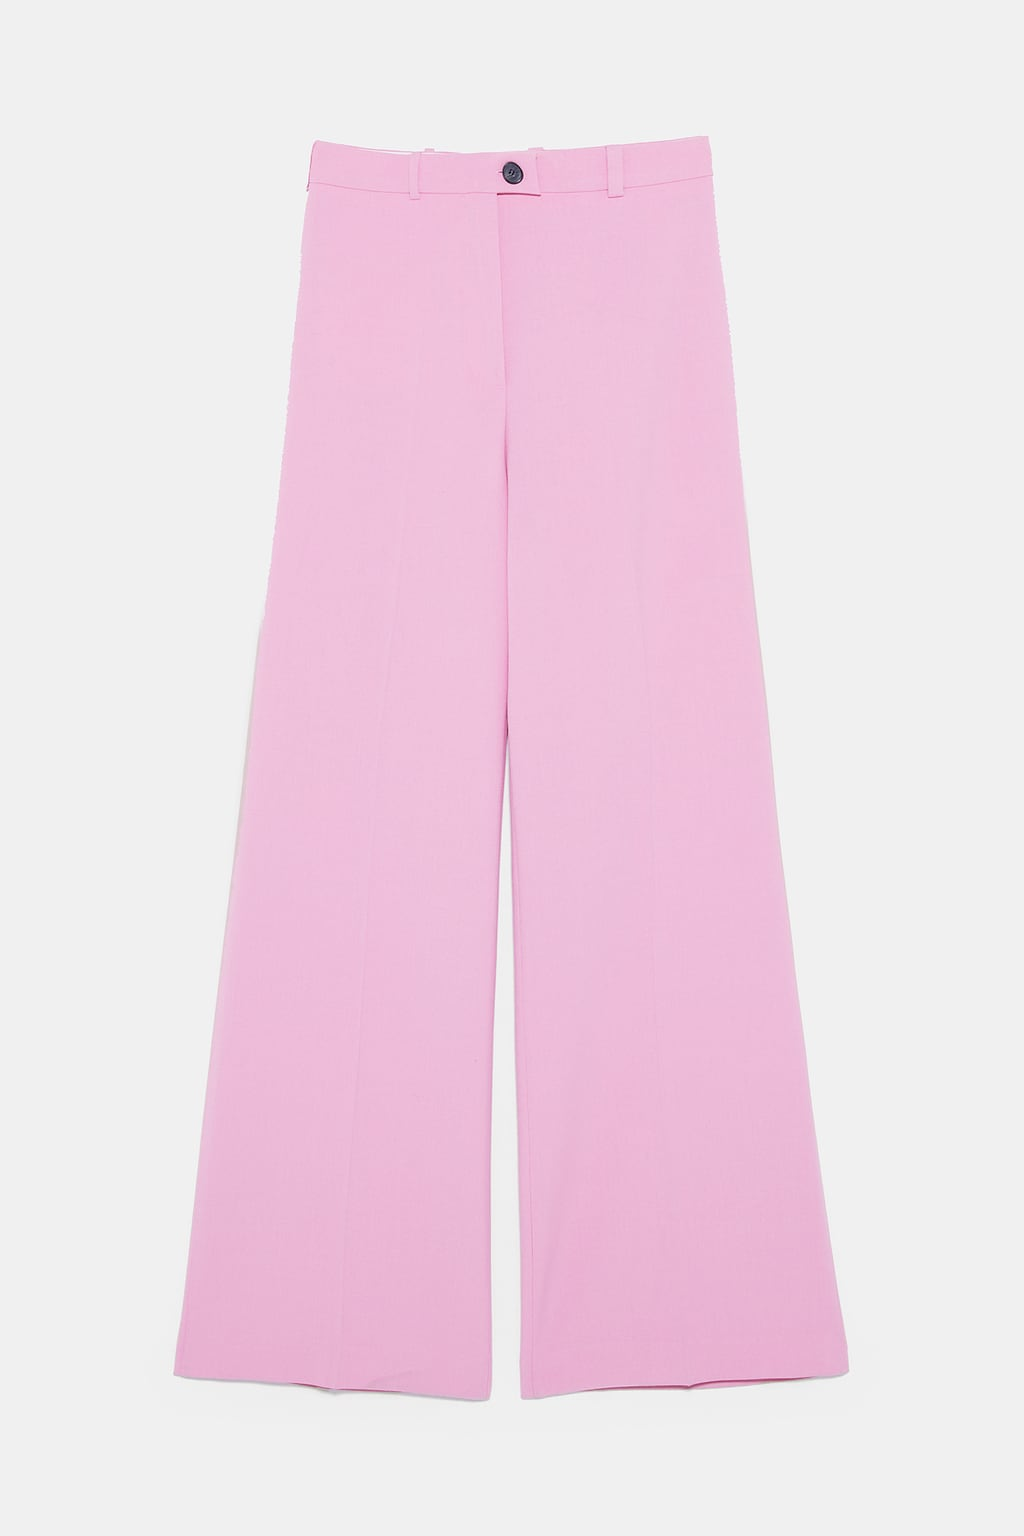 pantalon rose zara